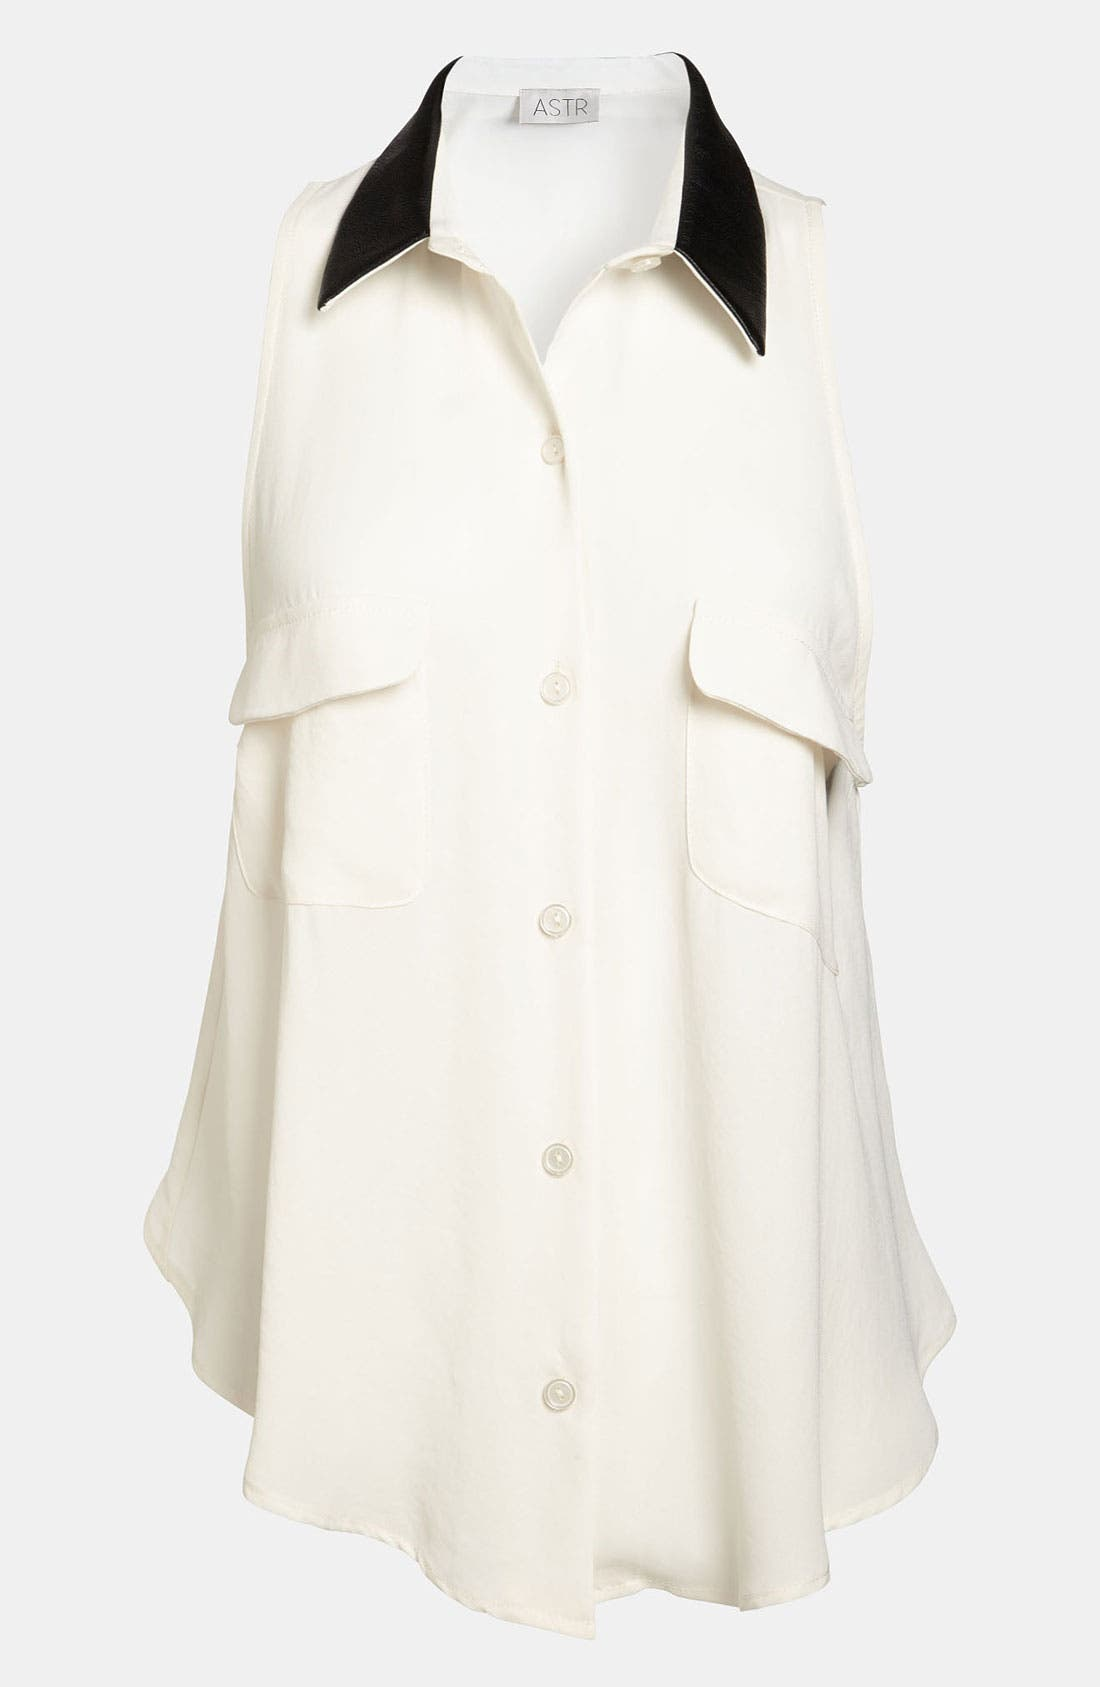 Main Image - ASTR Faux Leather Collar Shirt